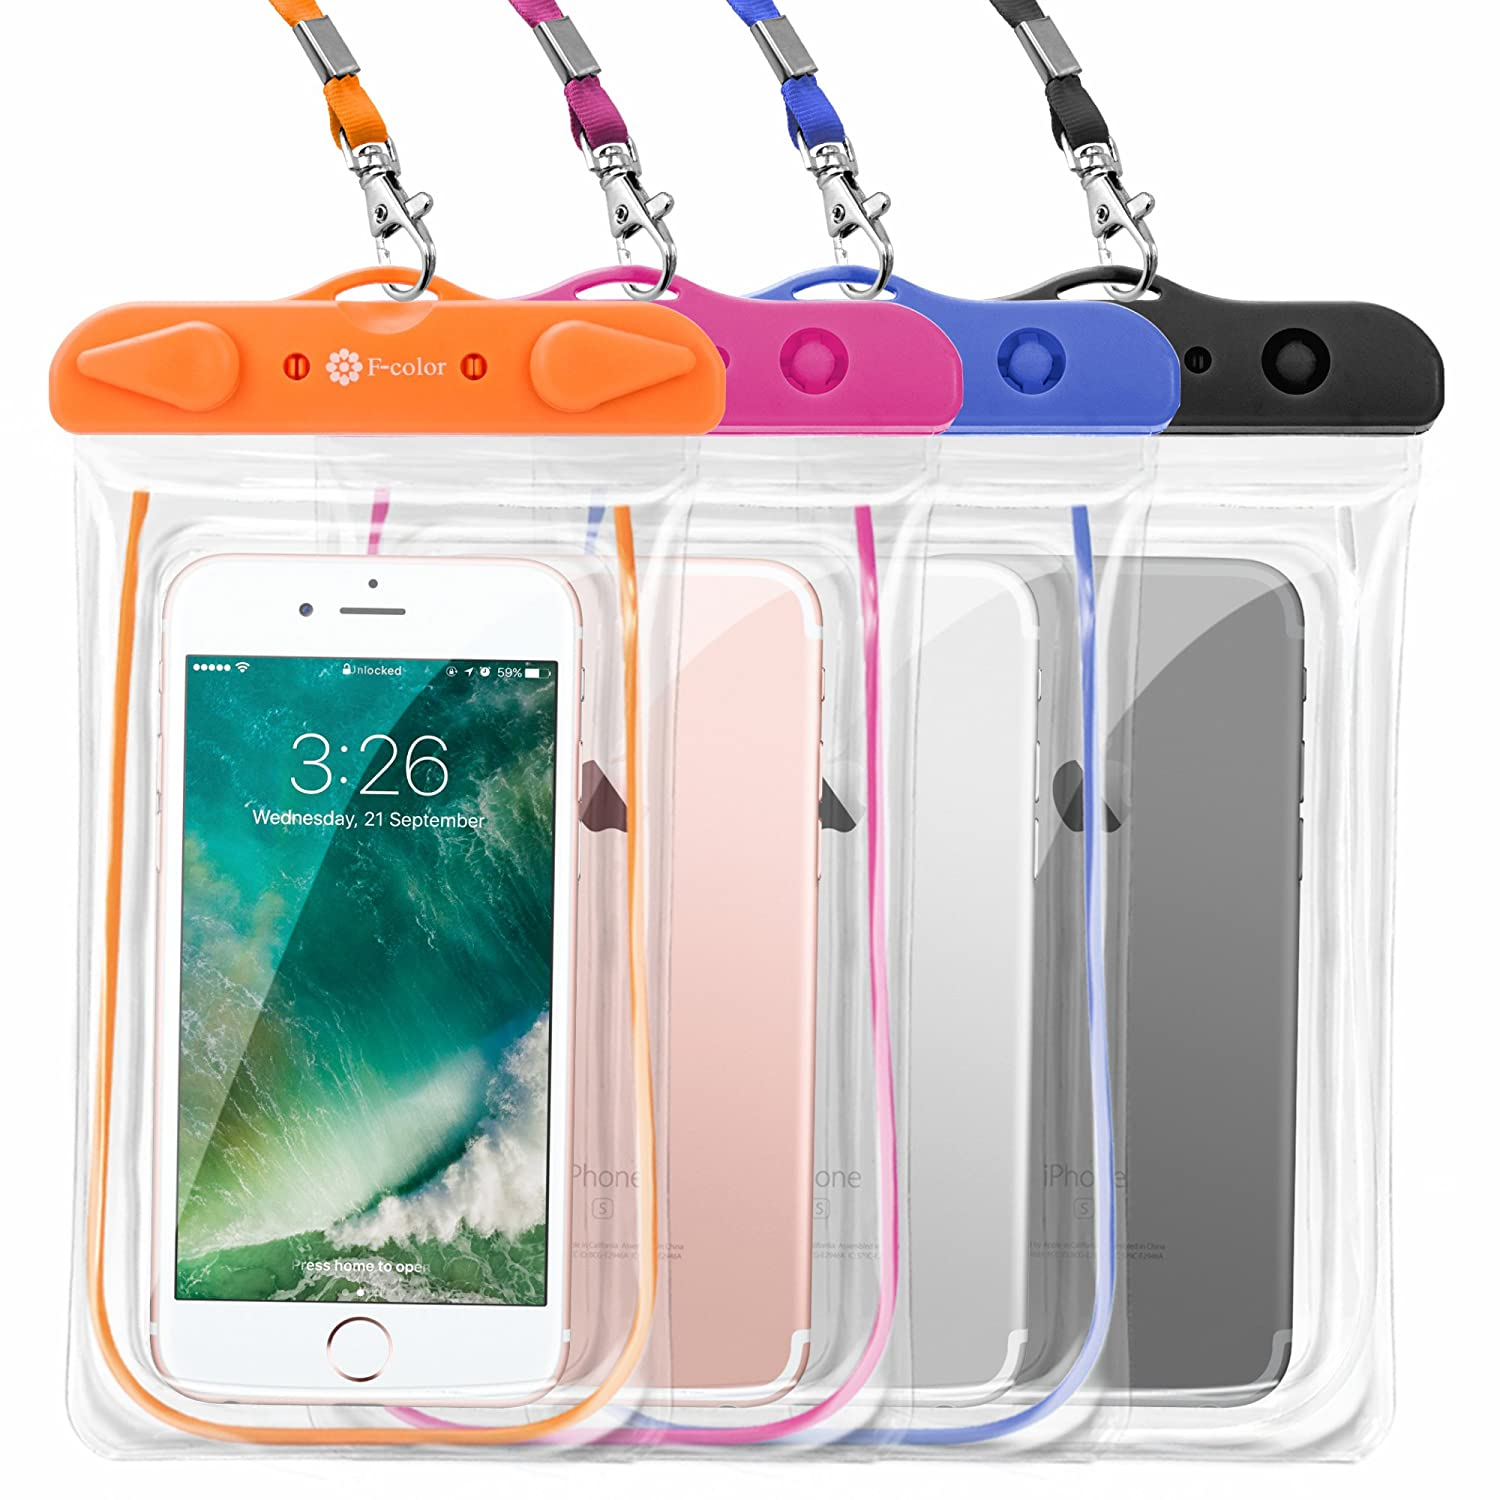 Waterproof Case, 4 Pack F-color Universal Clear Waterproof Pouch Floating Dry Case Beach Bag for iPhone X 8 7 6S 6 Plus 5S 5 5C, Google Pixel XL, Samsung Galaxy S8 S7, HTC, LG, Blue Black Orange Pink